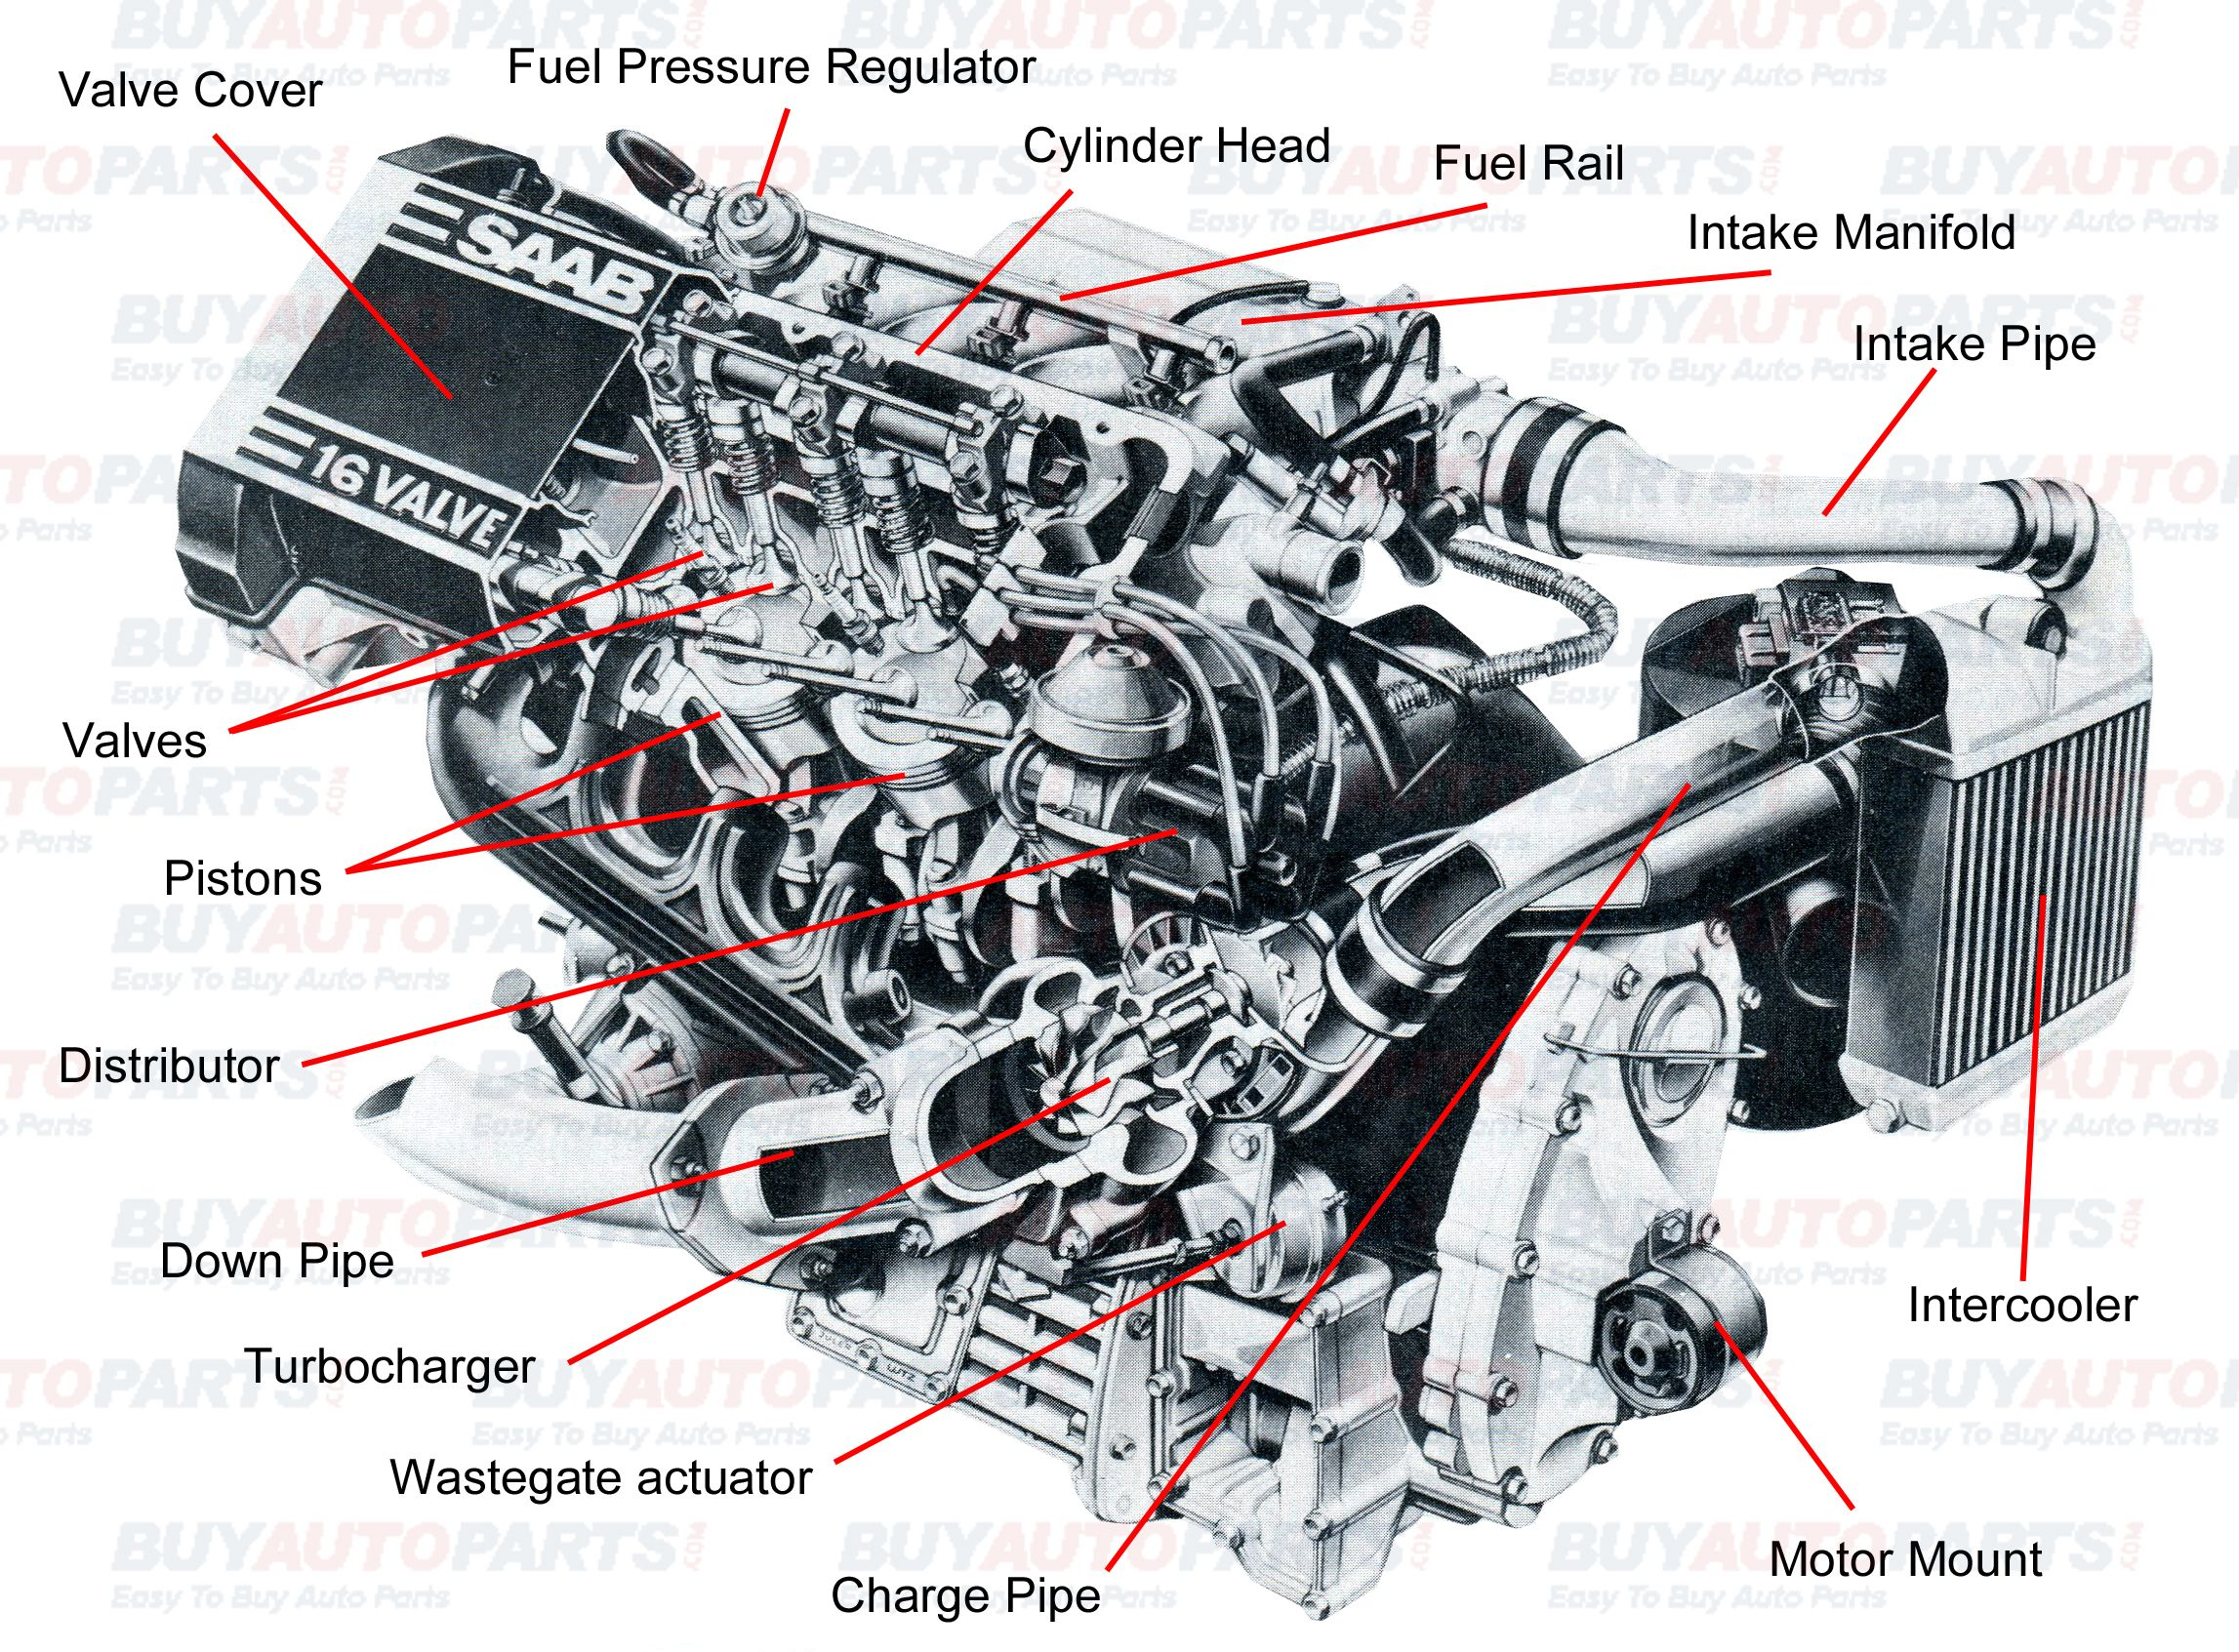 How a Car Engine Works | The Art of Manliness